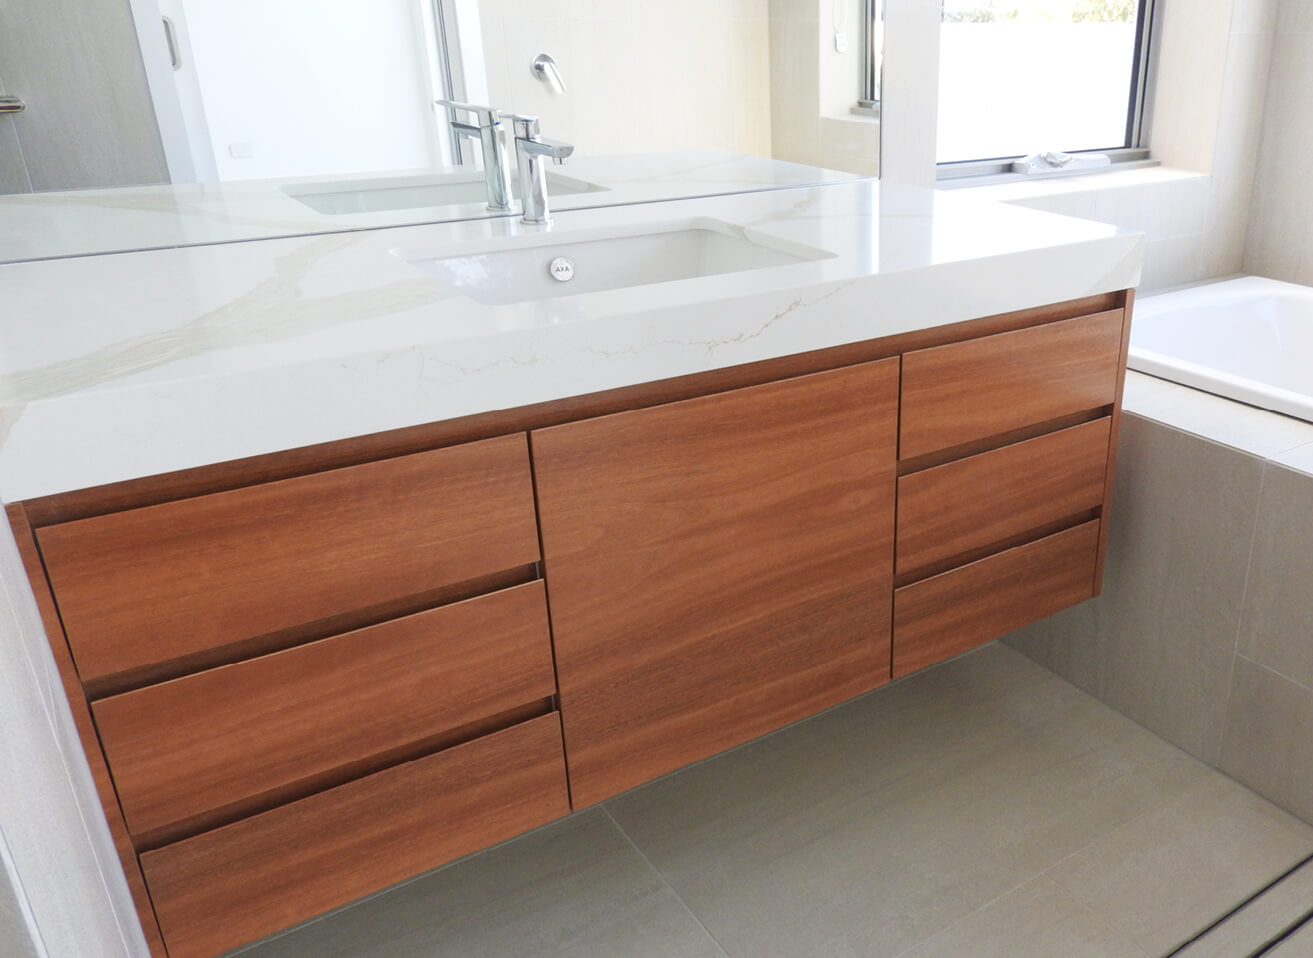 Bathroom Renovations Best Gold Coast Area 2019